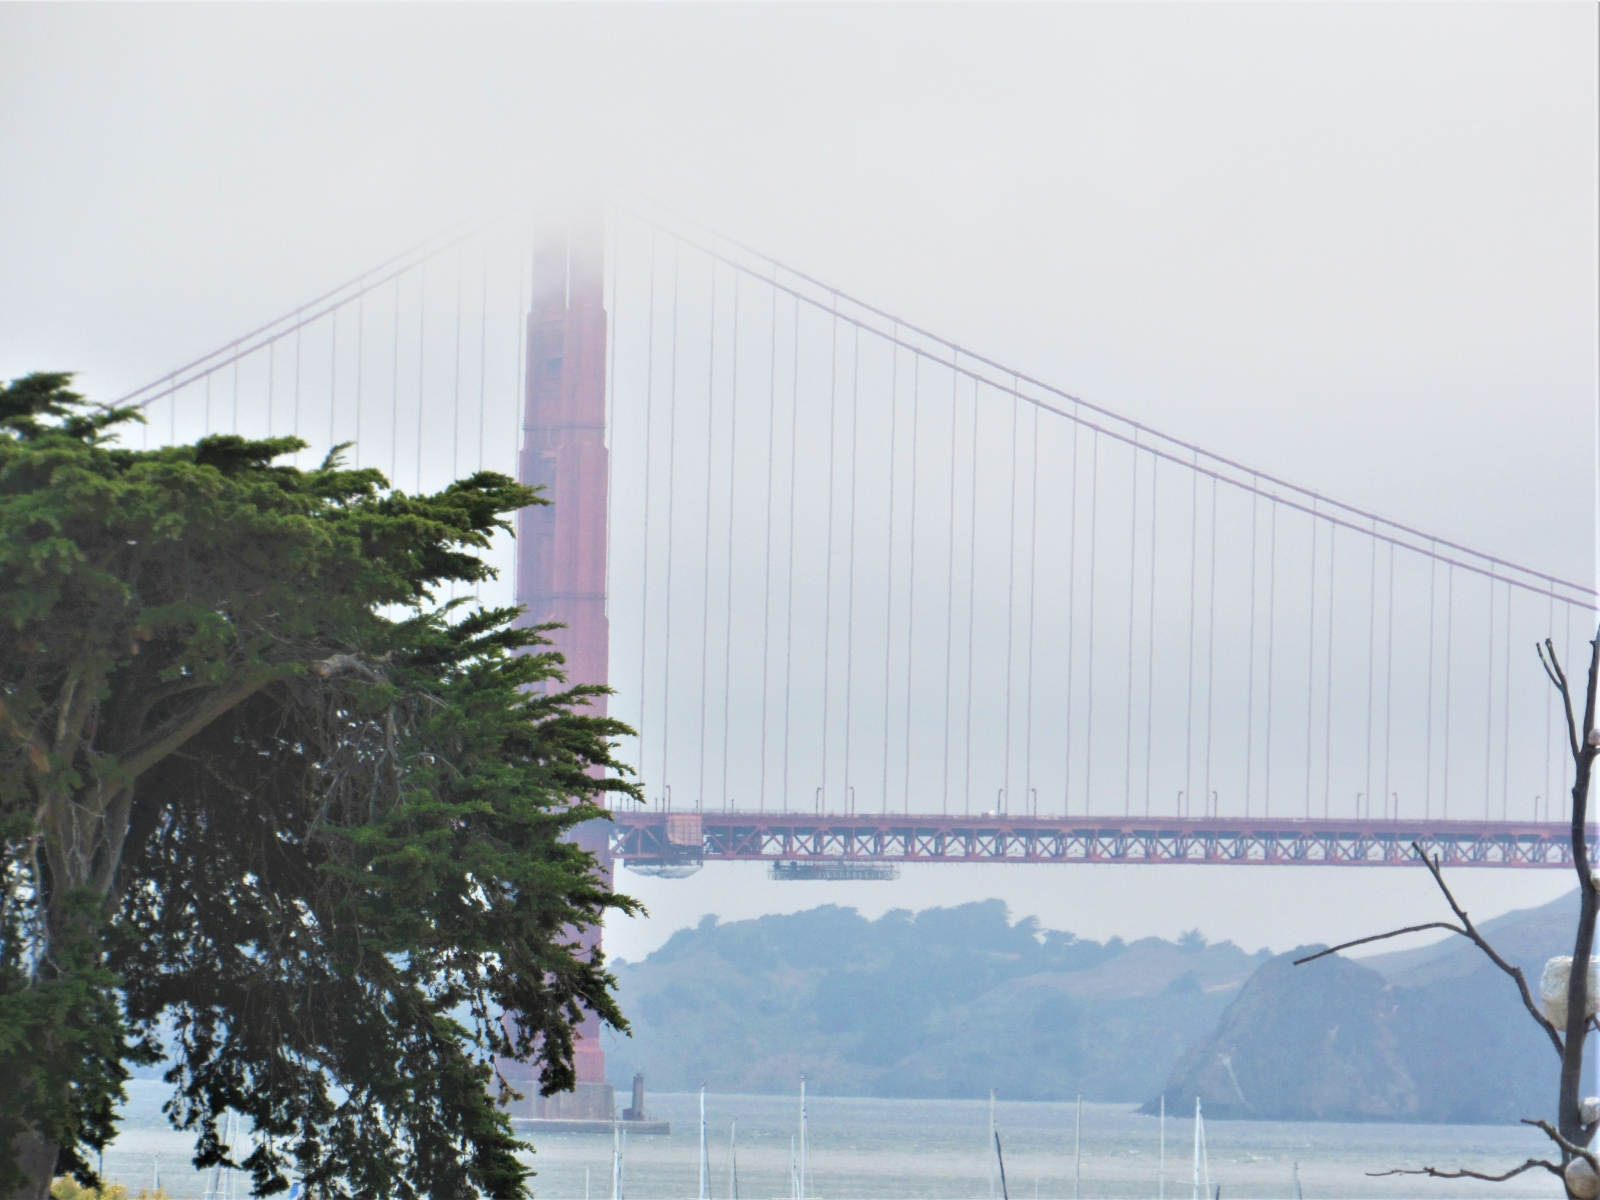 Bridge-in-fog